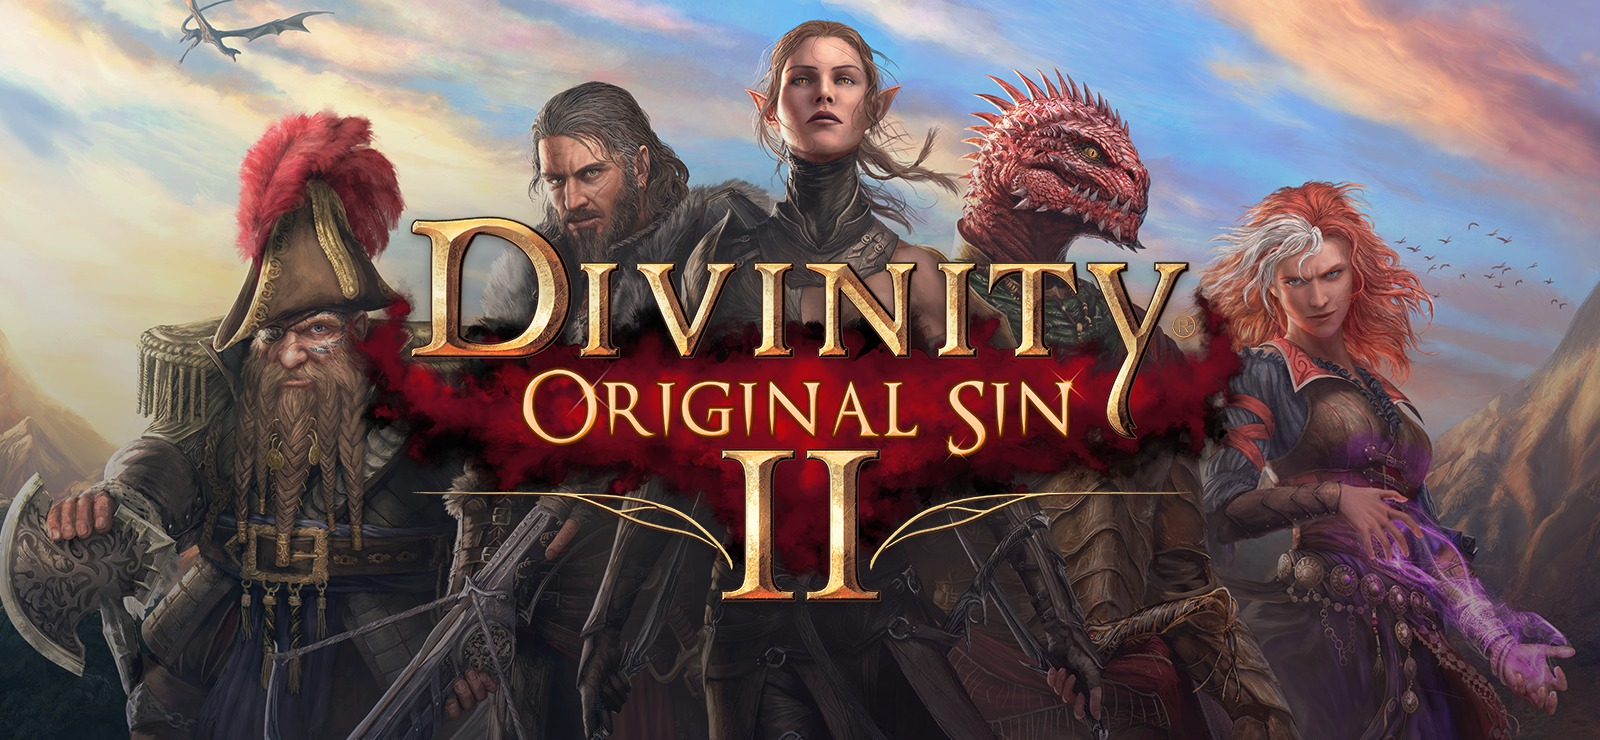 Divinity: Original Sin II is coming to Xbox One in August 1